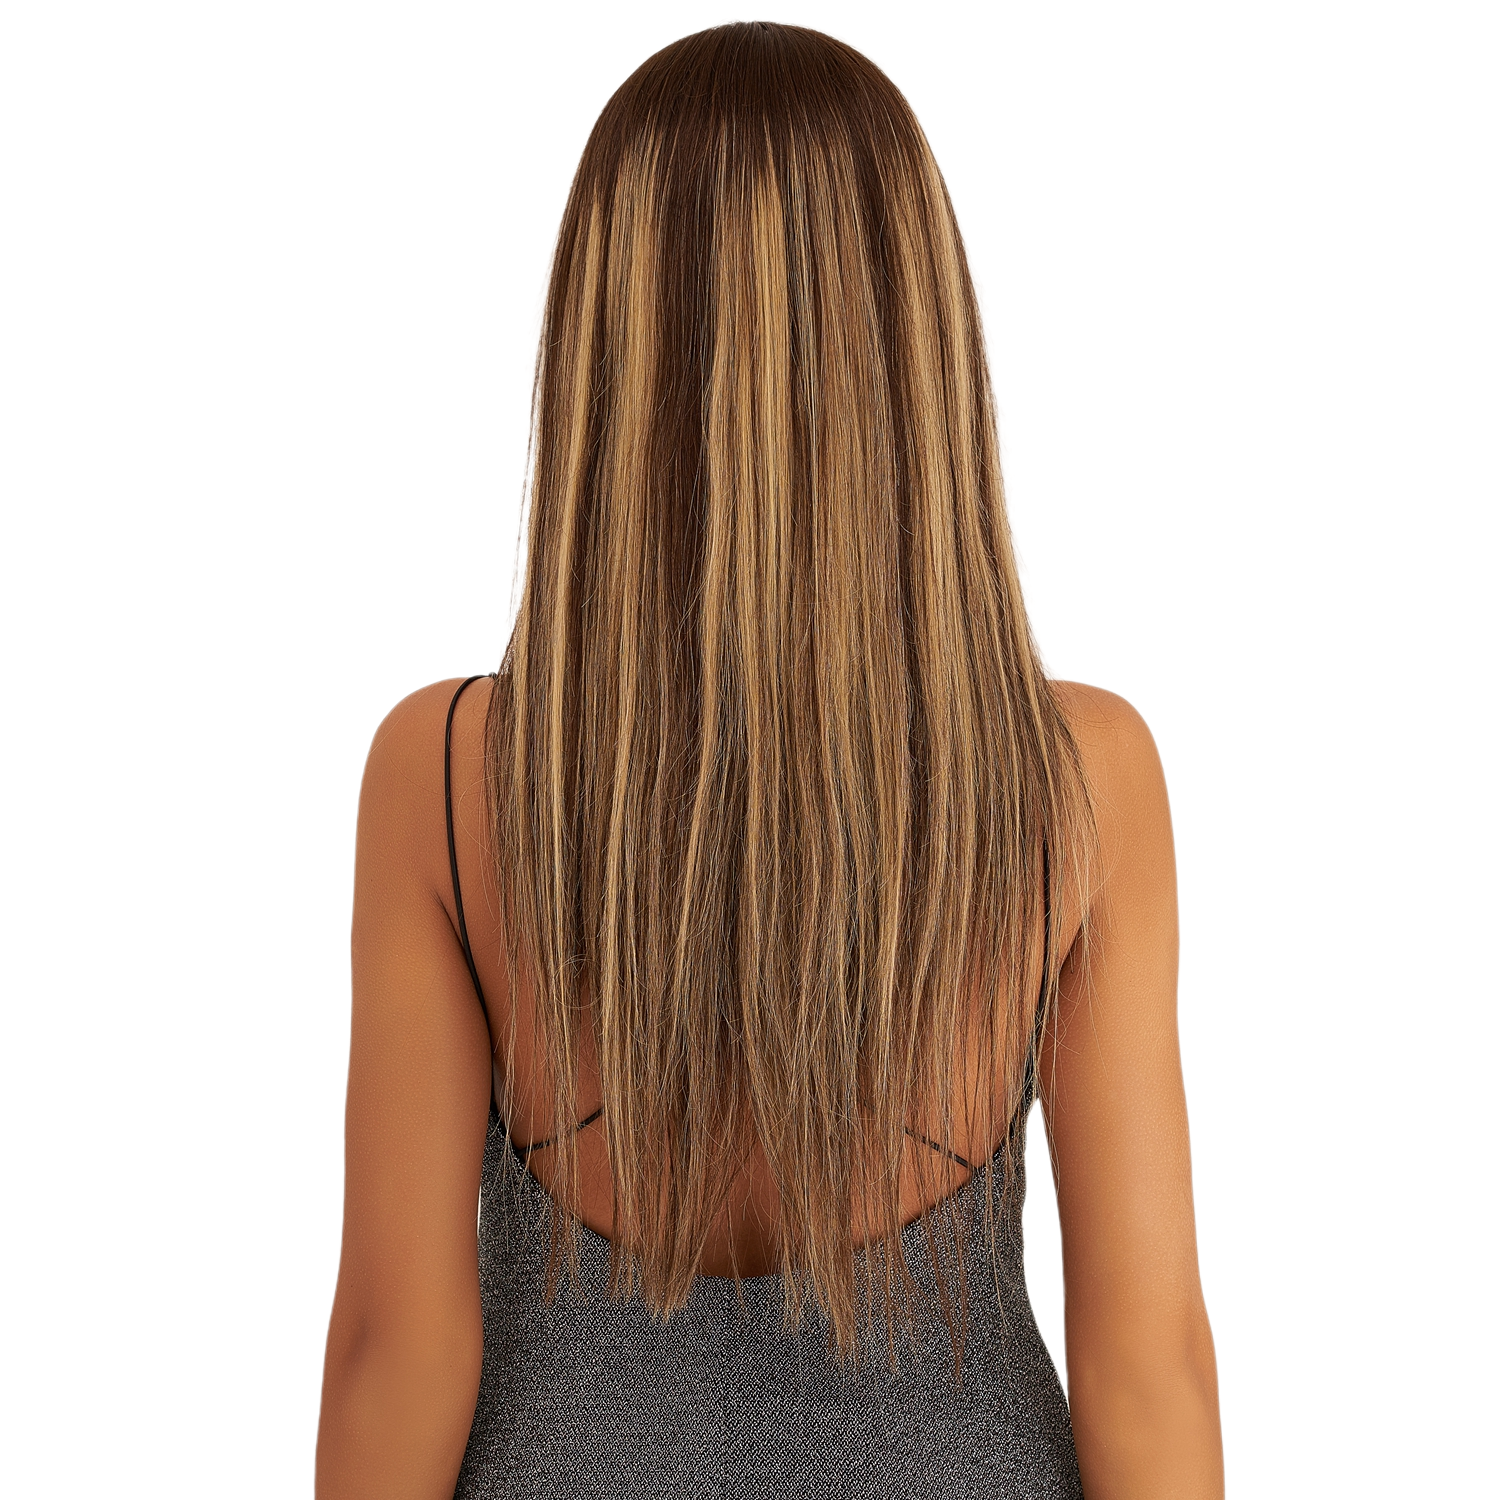 MW Pre Plucked Remy Human Hair Half Lace Wig 20 Inches 50cm Long Straight Ombre Frontal Wigs For Women FedEx Free Shipping